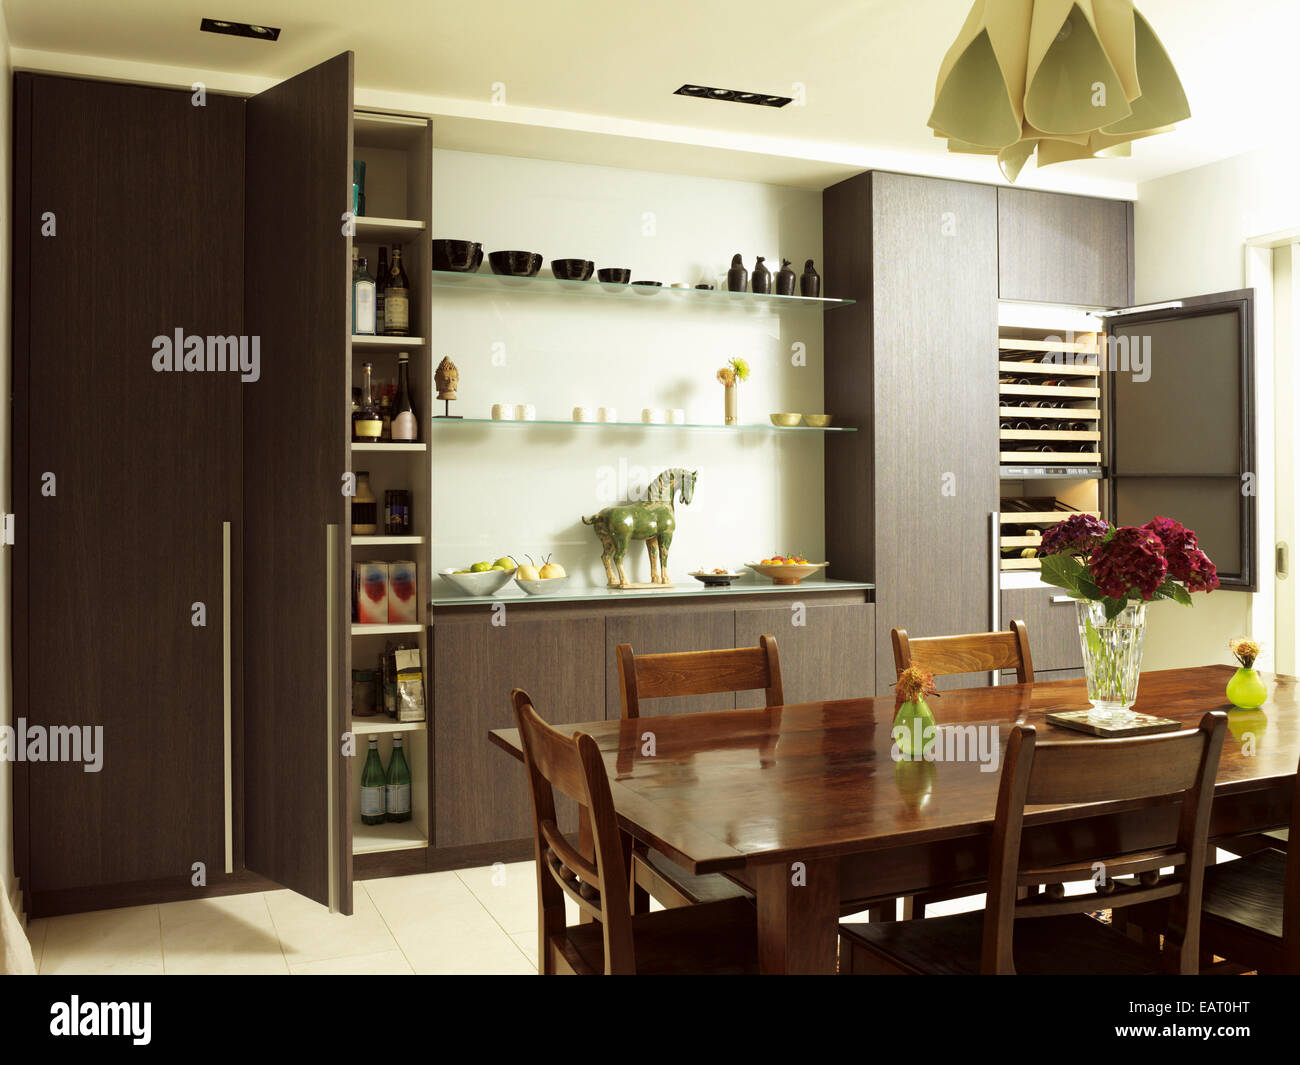 Dining Table And Chairs In Front Of Central Island Unit In Spacious Kitchen  With Wood Units With Open Cupboard Door